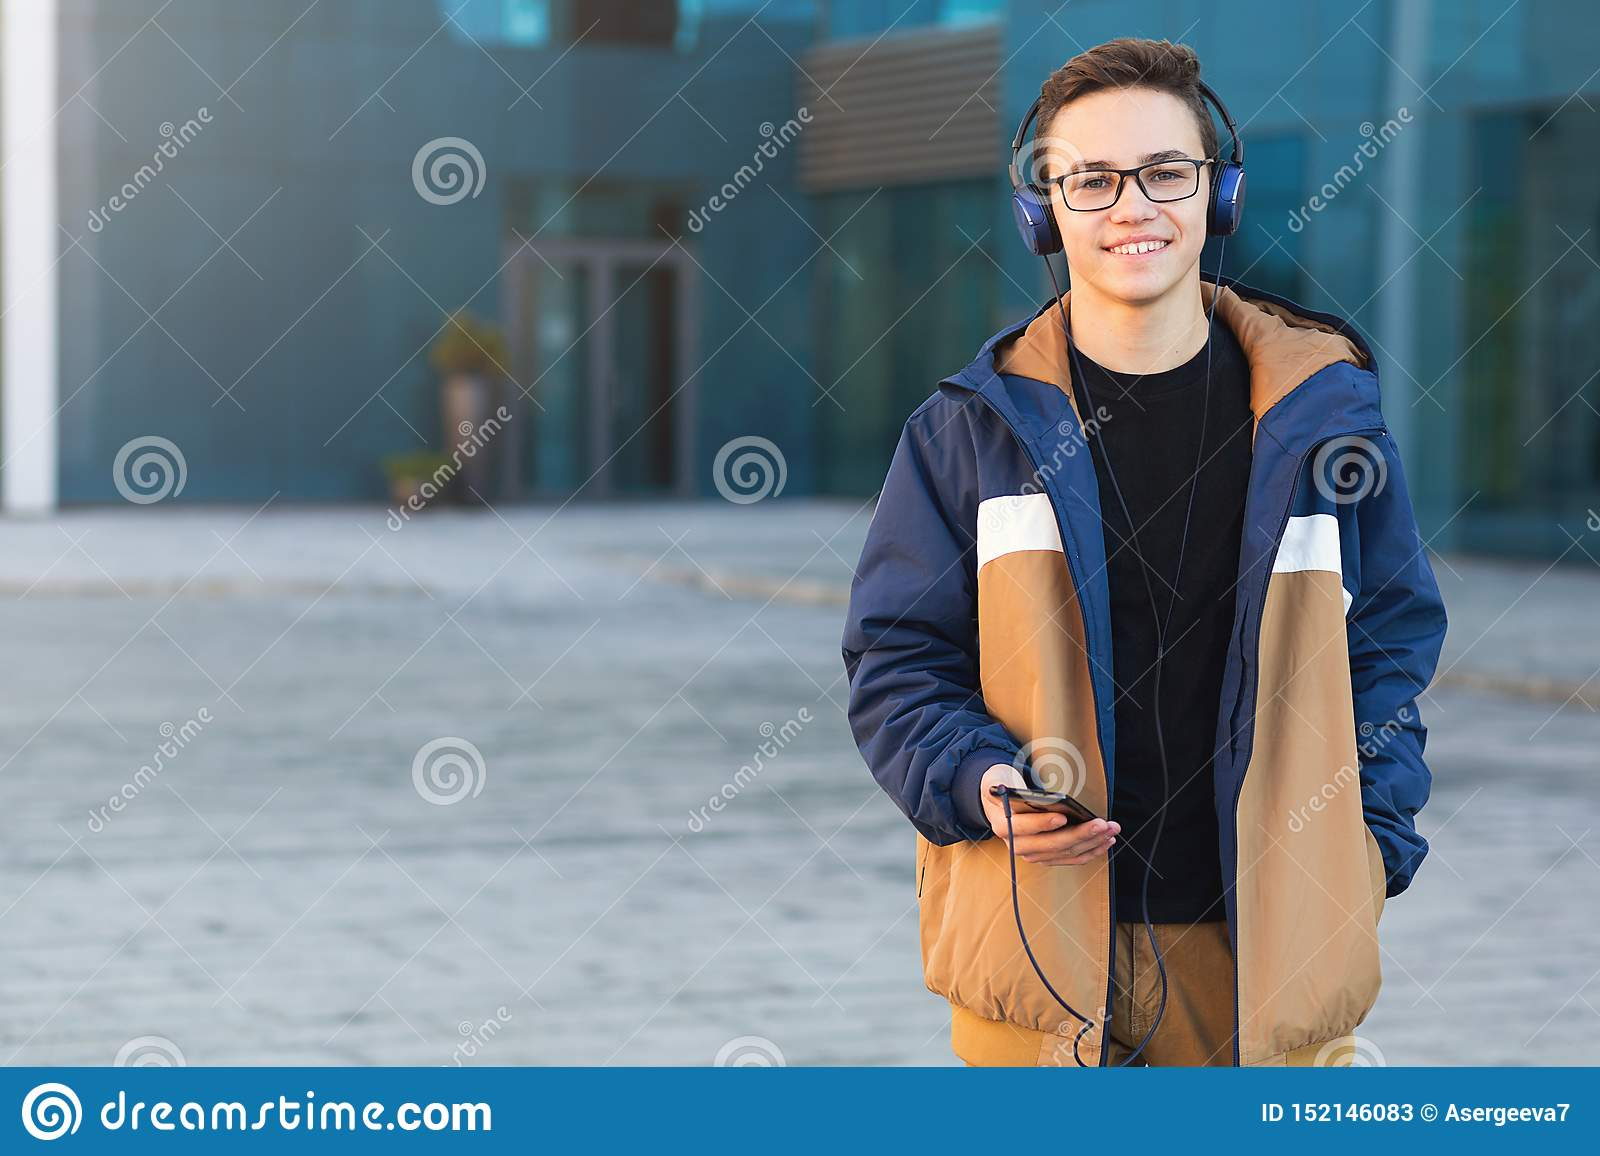 Smiling young guy listening to music, holding the phone outdoors. Copy space